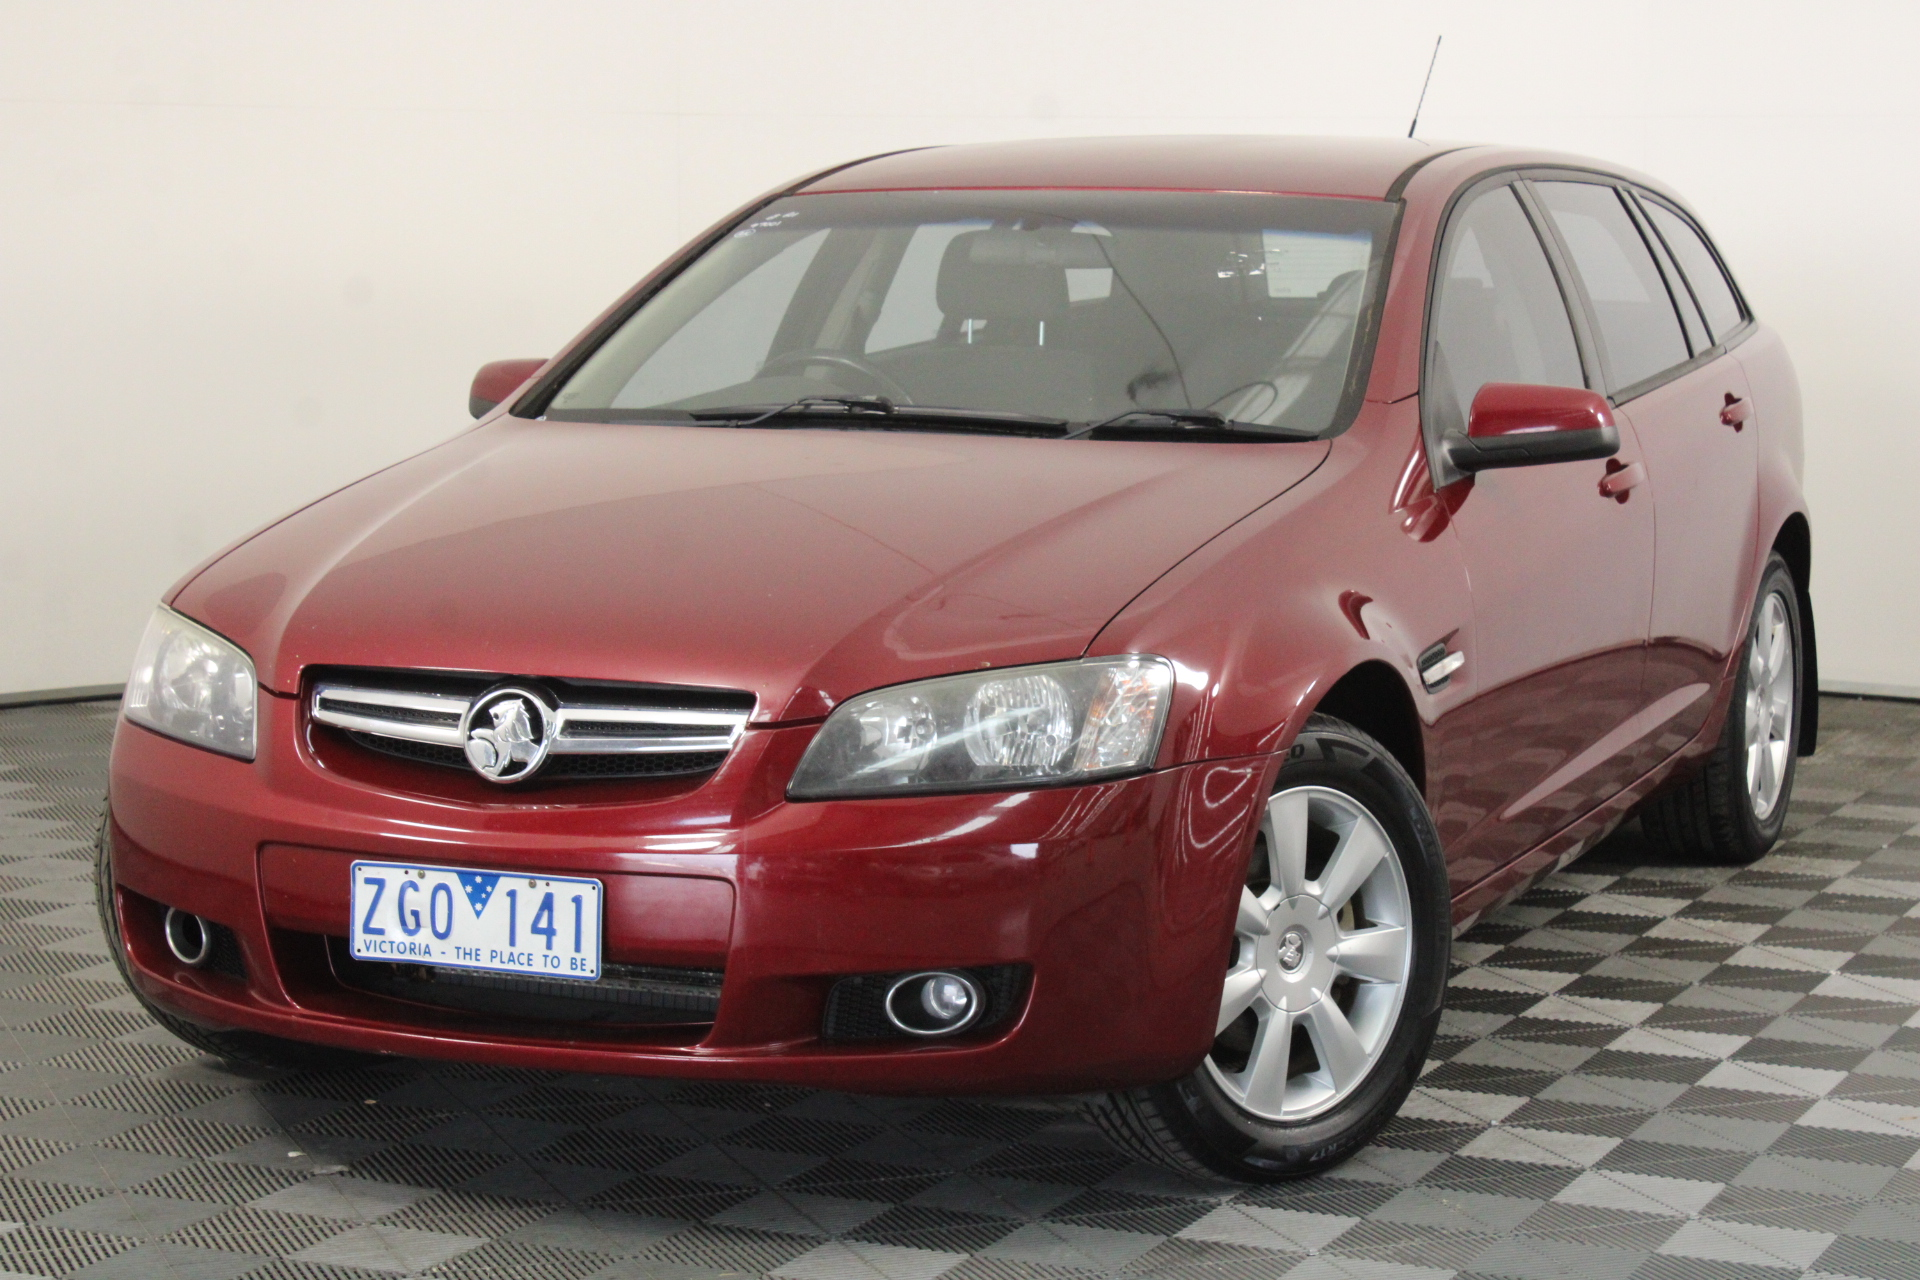 2009 Holden Berlina VE Automatic Wagon